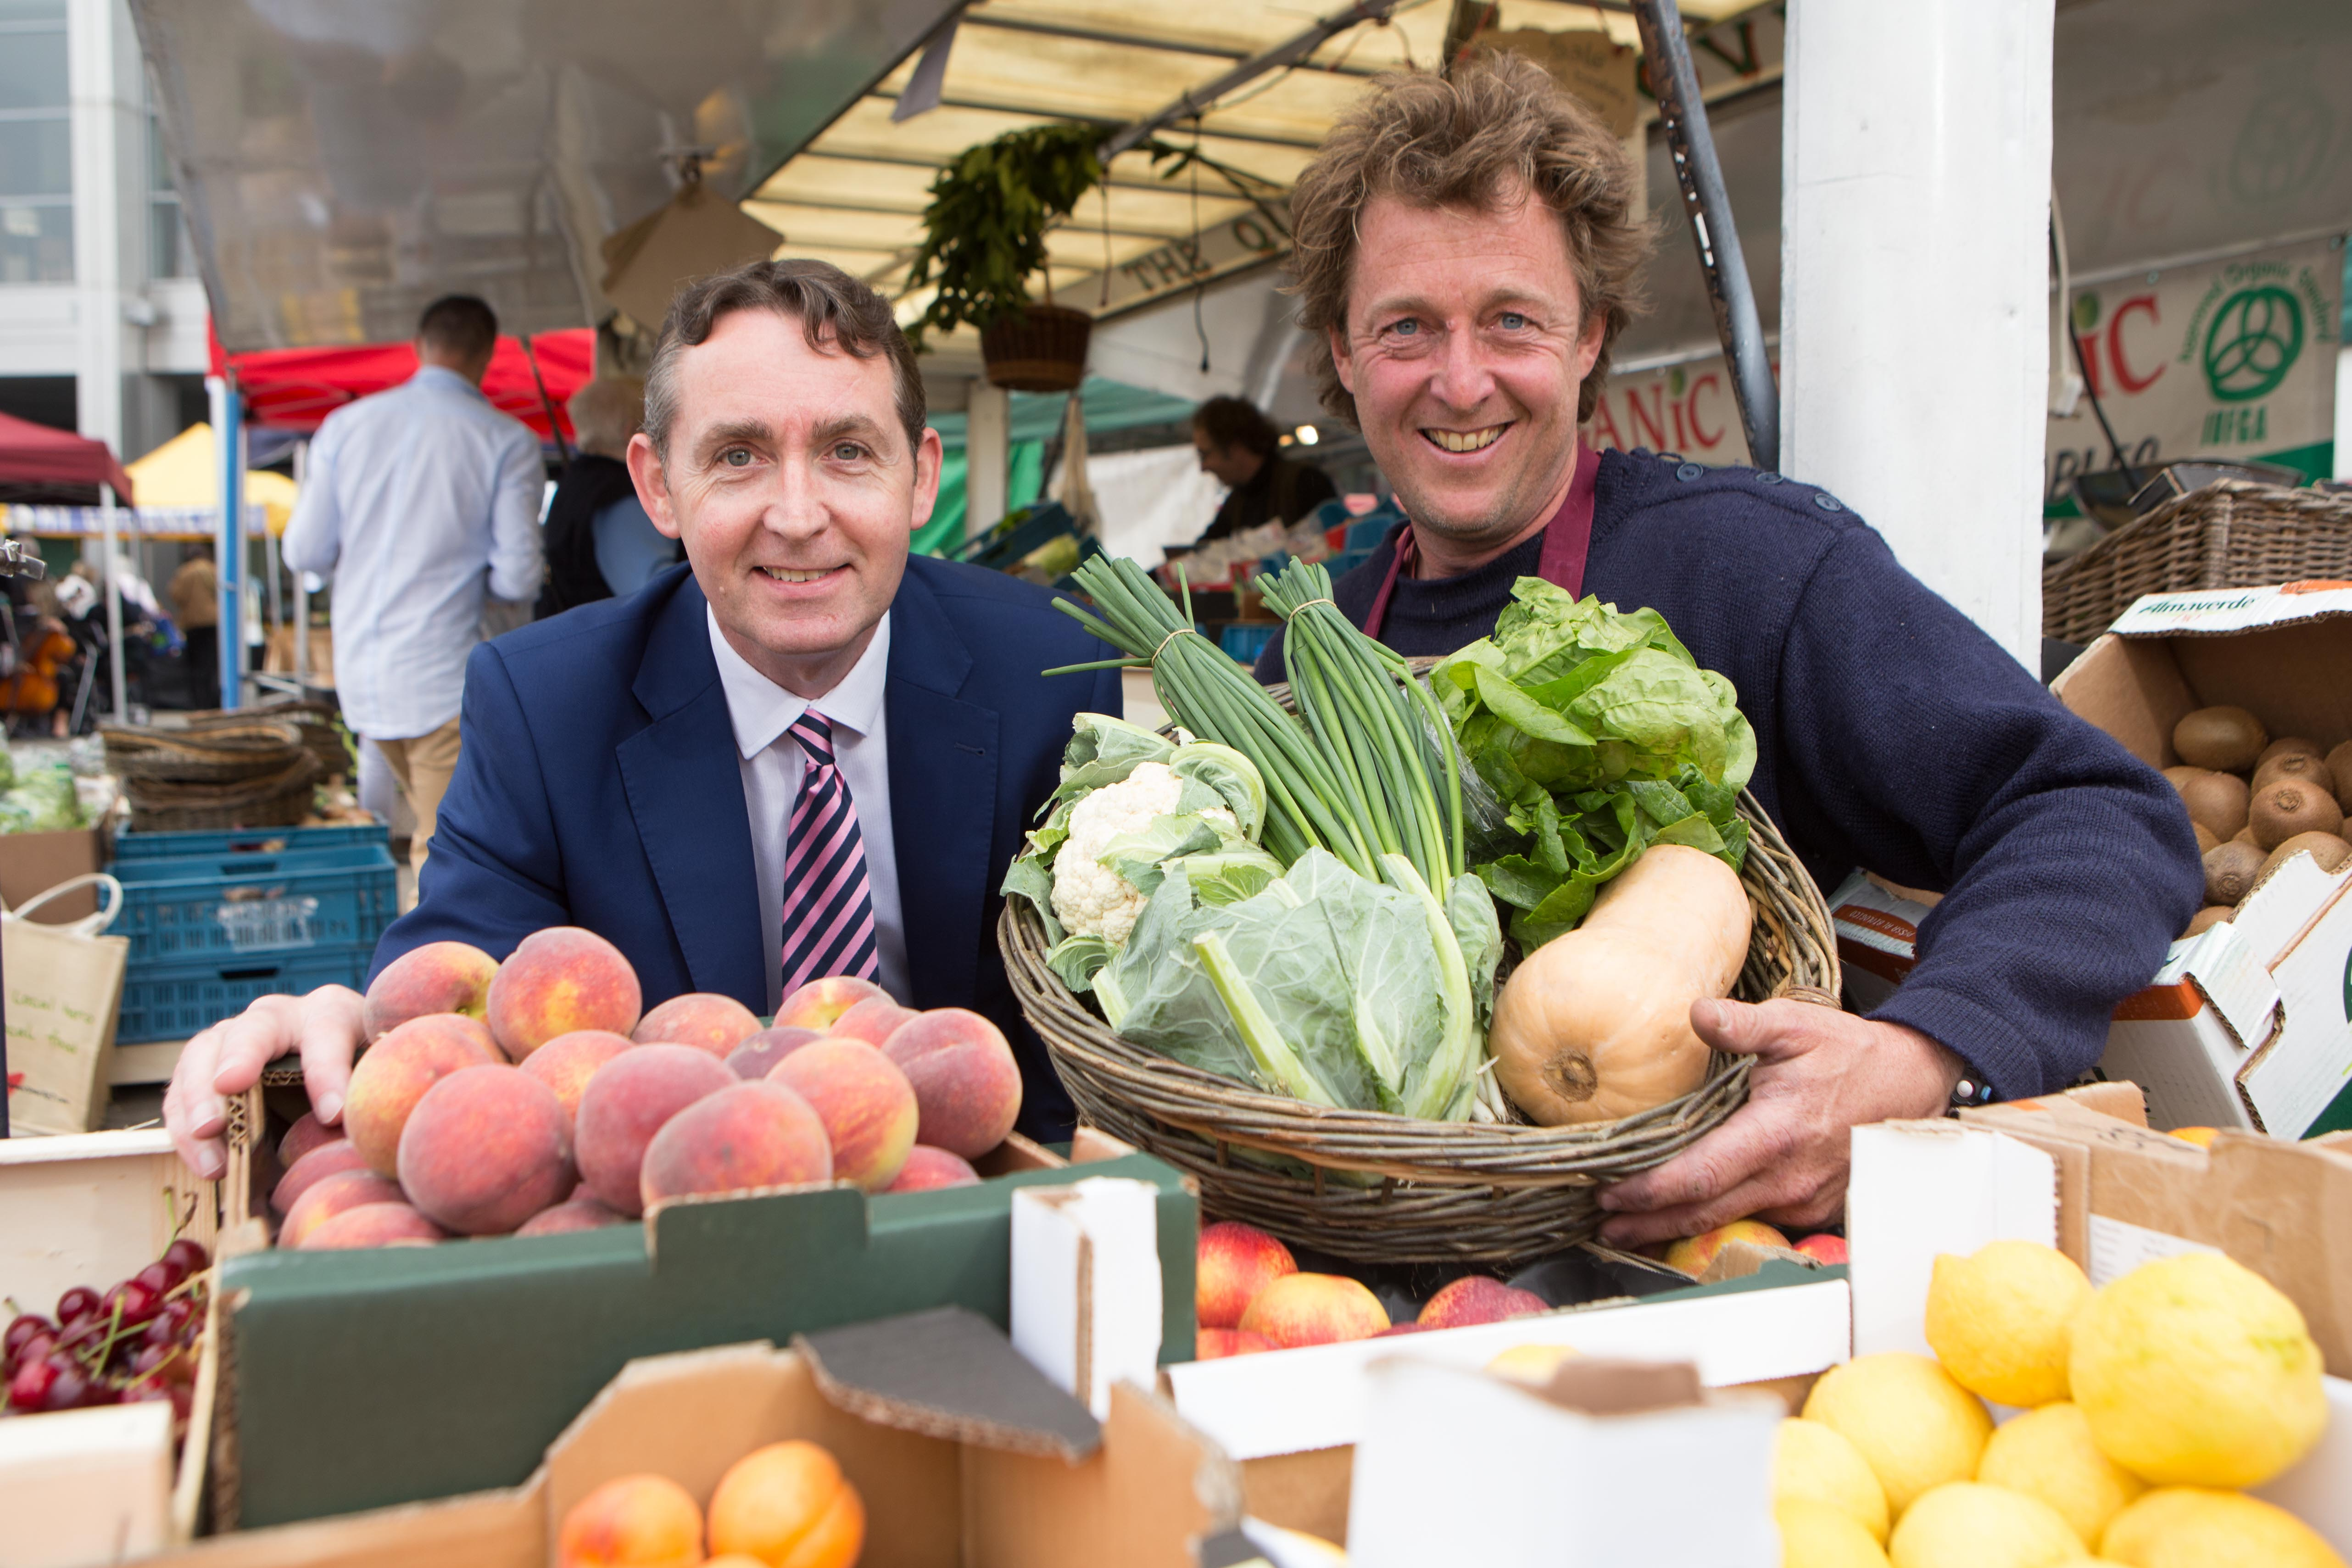 91362e8ec4da4 Justin Young, Mahon Point Centre Manager and Rupert Hugh-Jones, manager of  the Farmers Market in Mahon Point Farmers Market to announce the expansion  of the ...